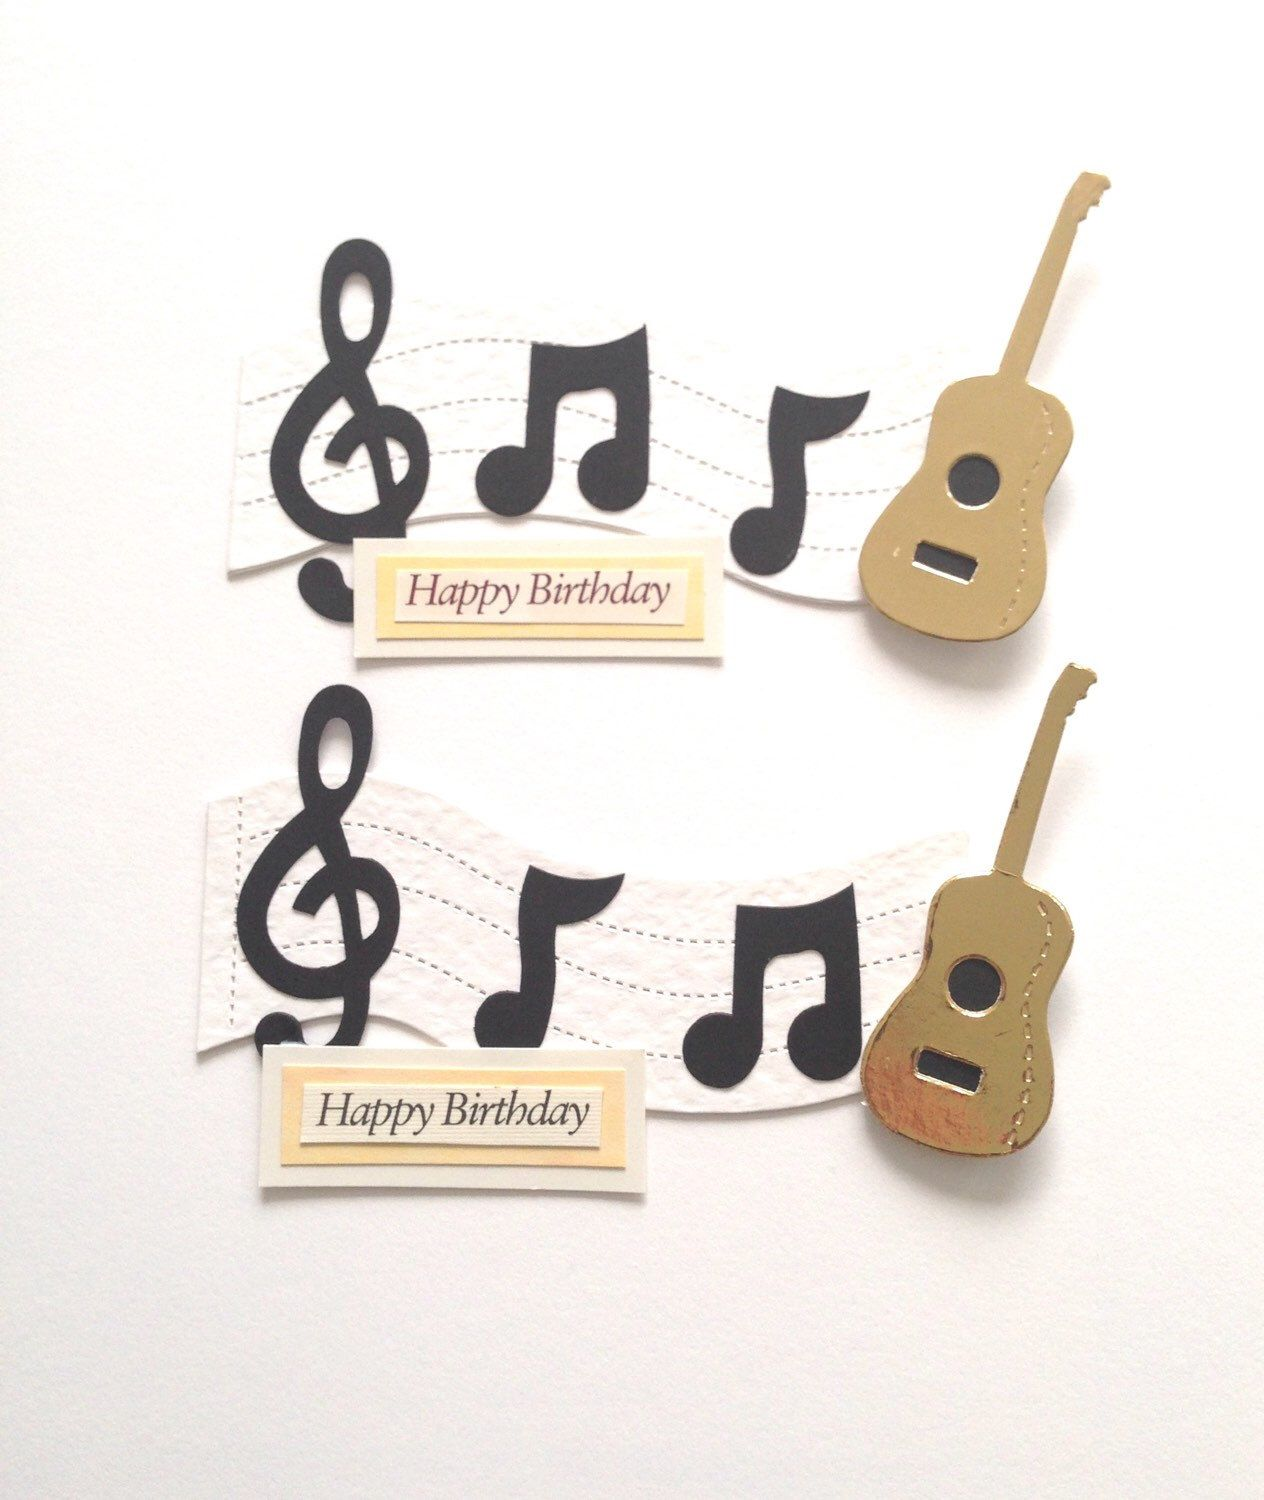 2 Large Music Lover Guitar Note Happy Birthday Die Cut Card Toppers For